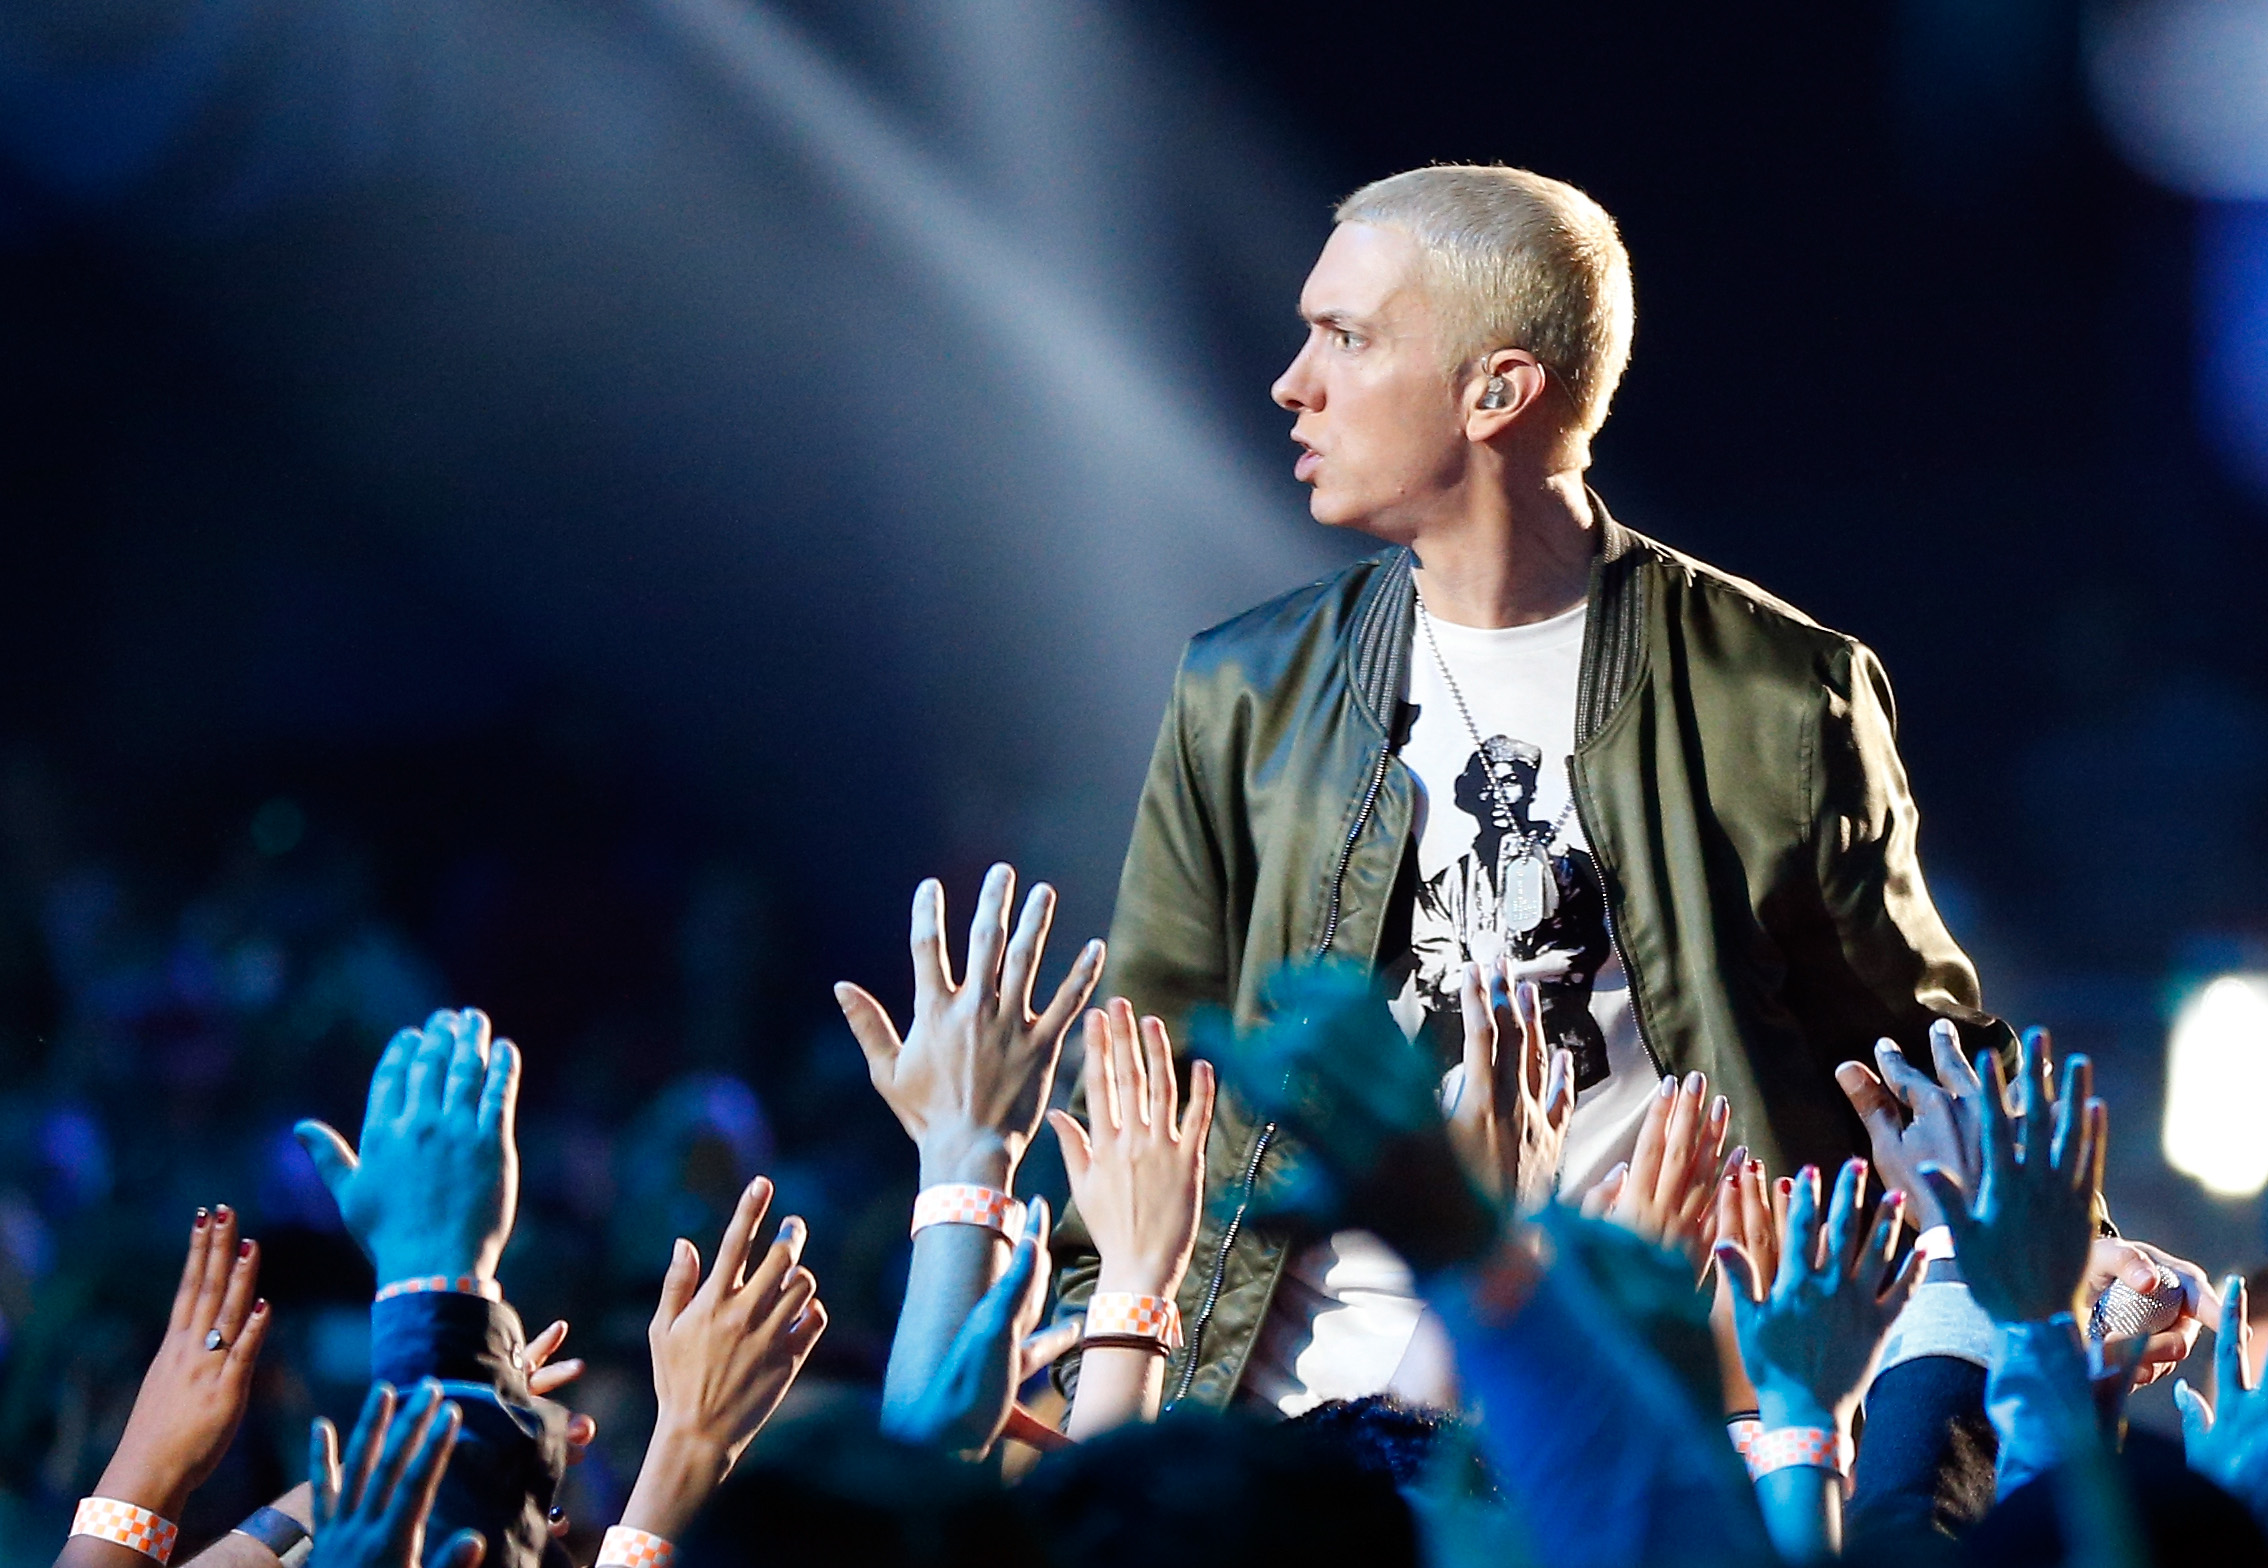 Eminems Skewers Donald Trump During Freestyle At BET Awards GettyImages 484695937